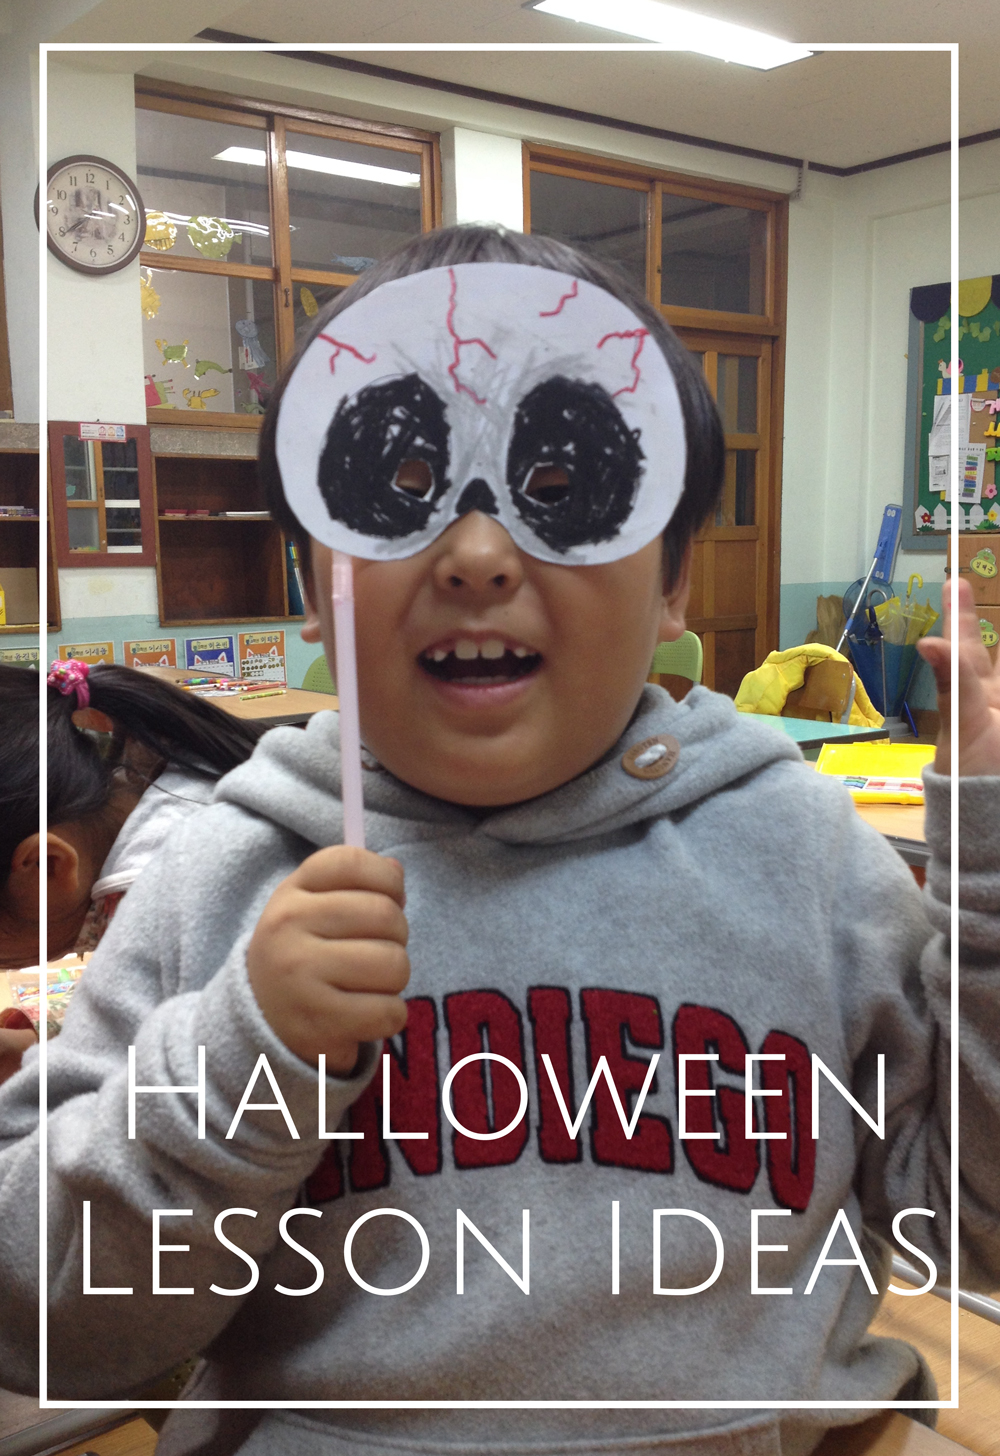 Halloween lesson ideas for teaching english